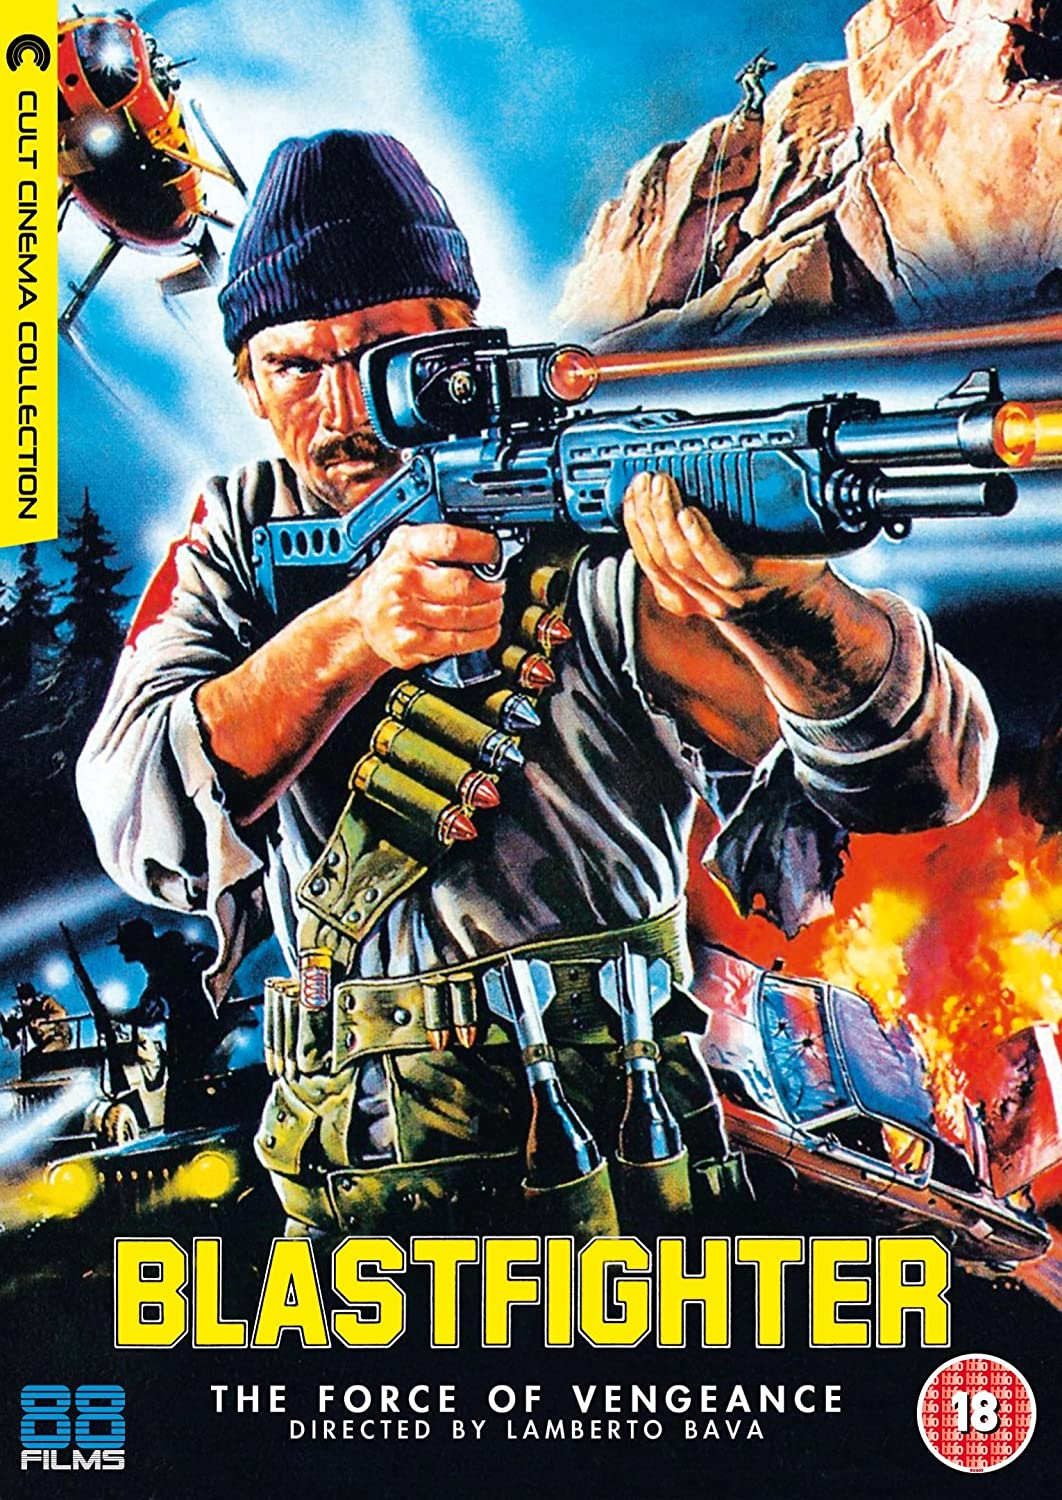 Blastfighter [Blu-ray] [Reino Unido]: Amazon.es: Michael ...